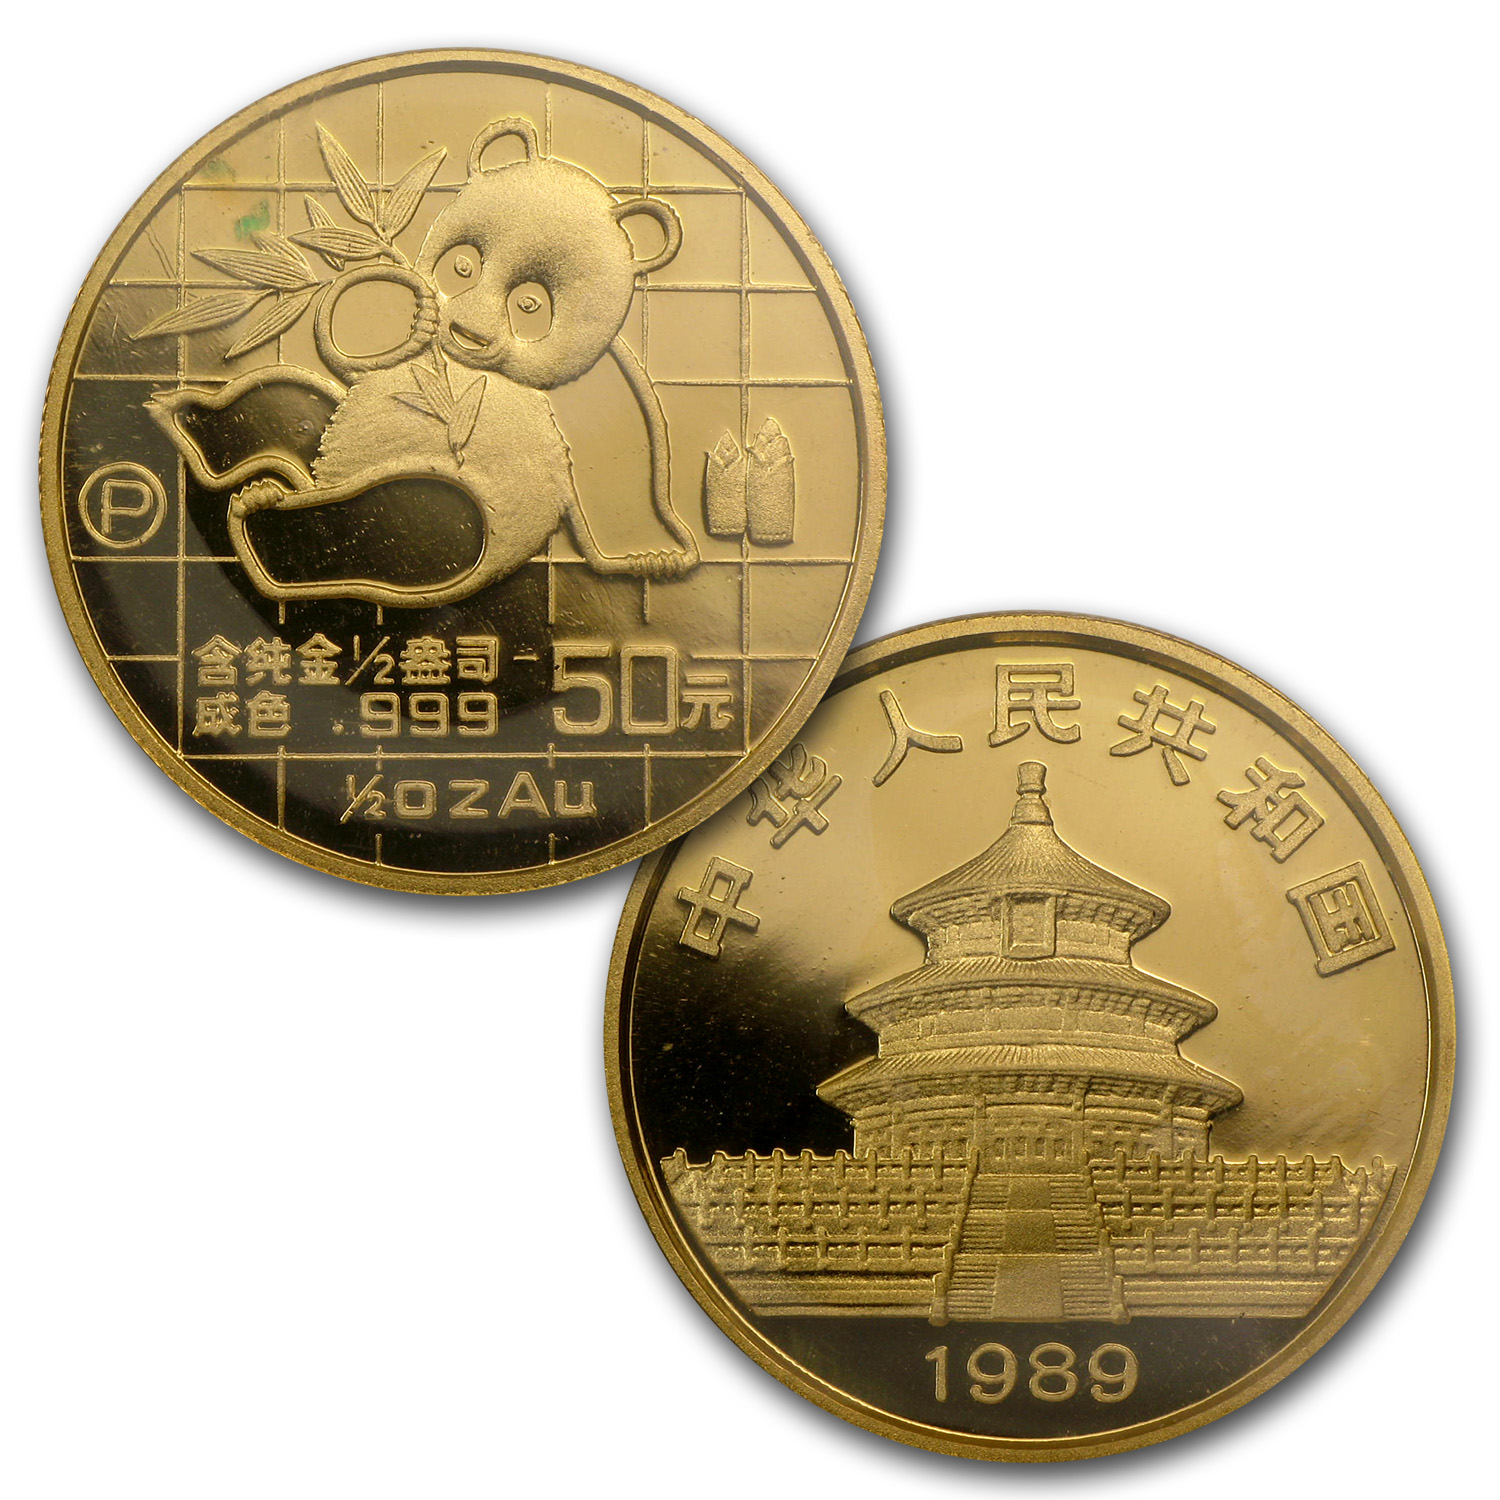 1989 (5 Coin PROOF) Gold Chinese Panda Set - (In Original Box)